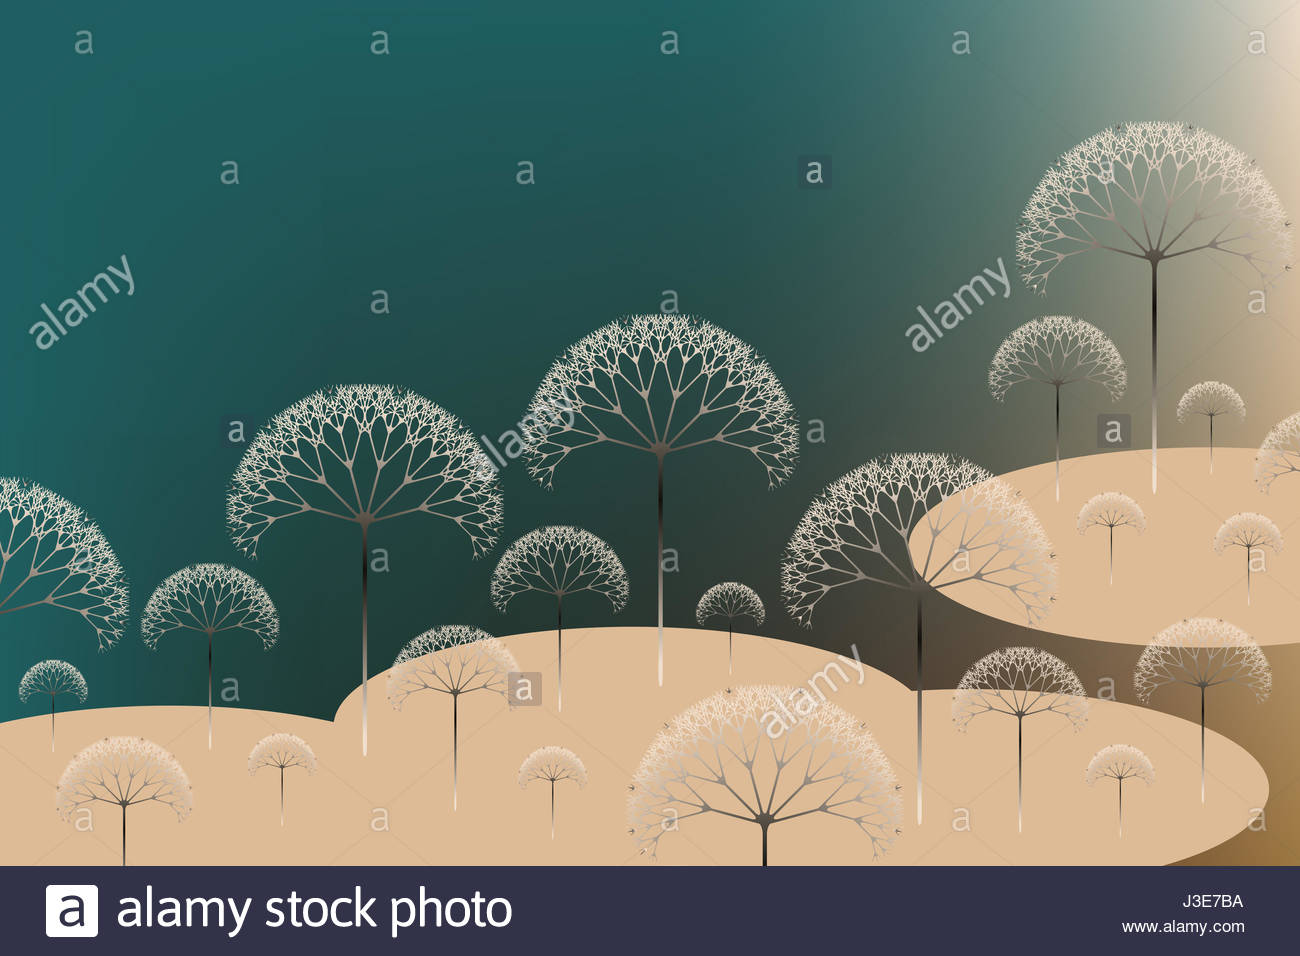 poetic trees landscape in green shades - Stock Image